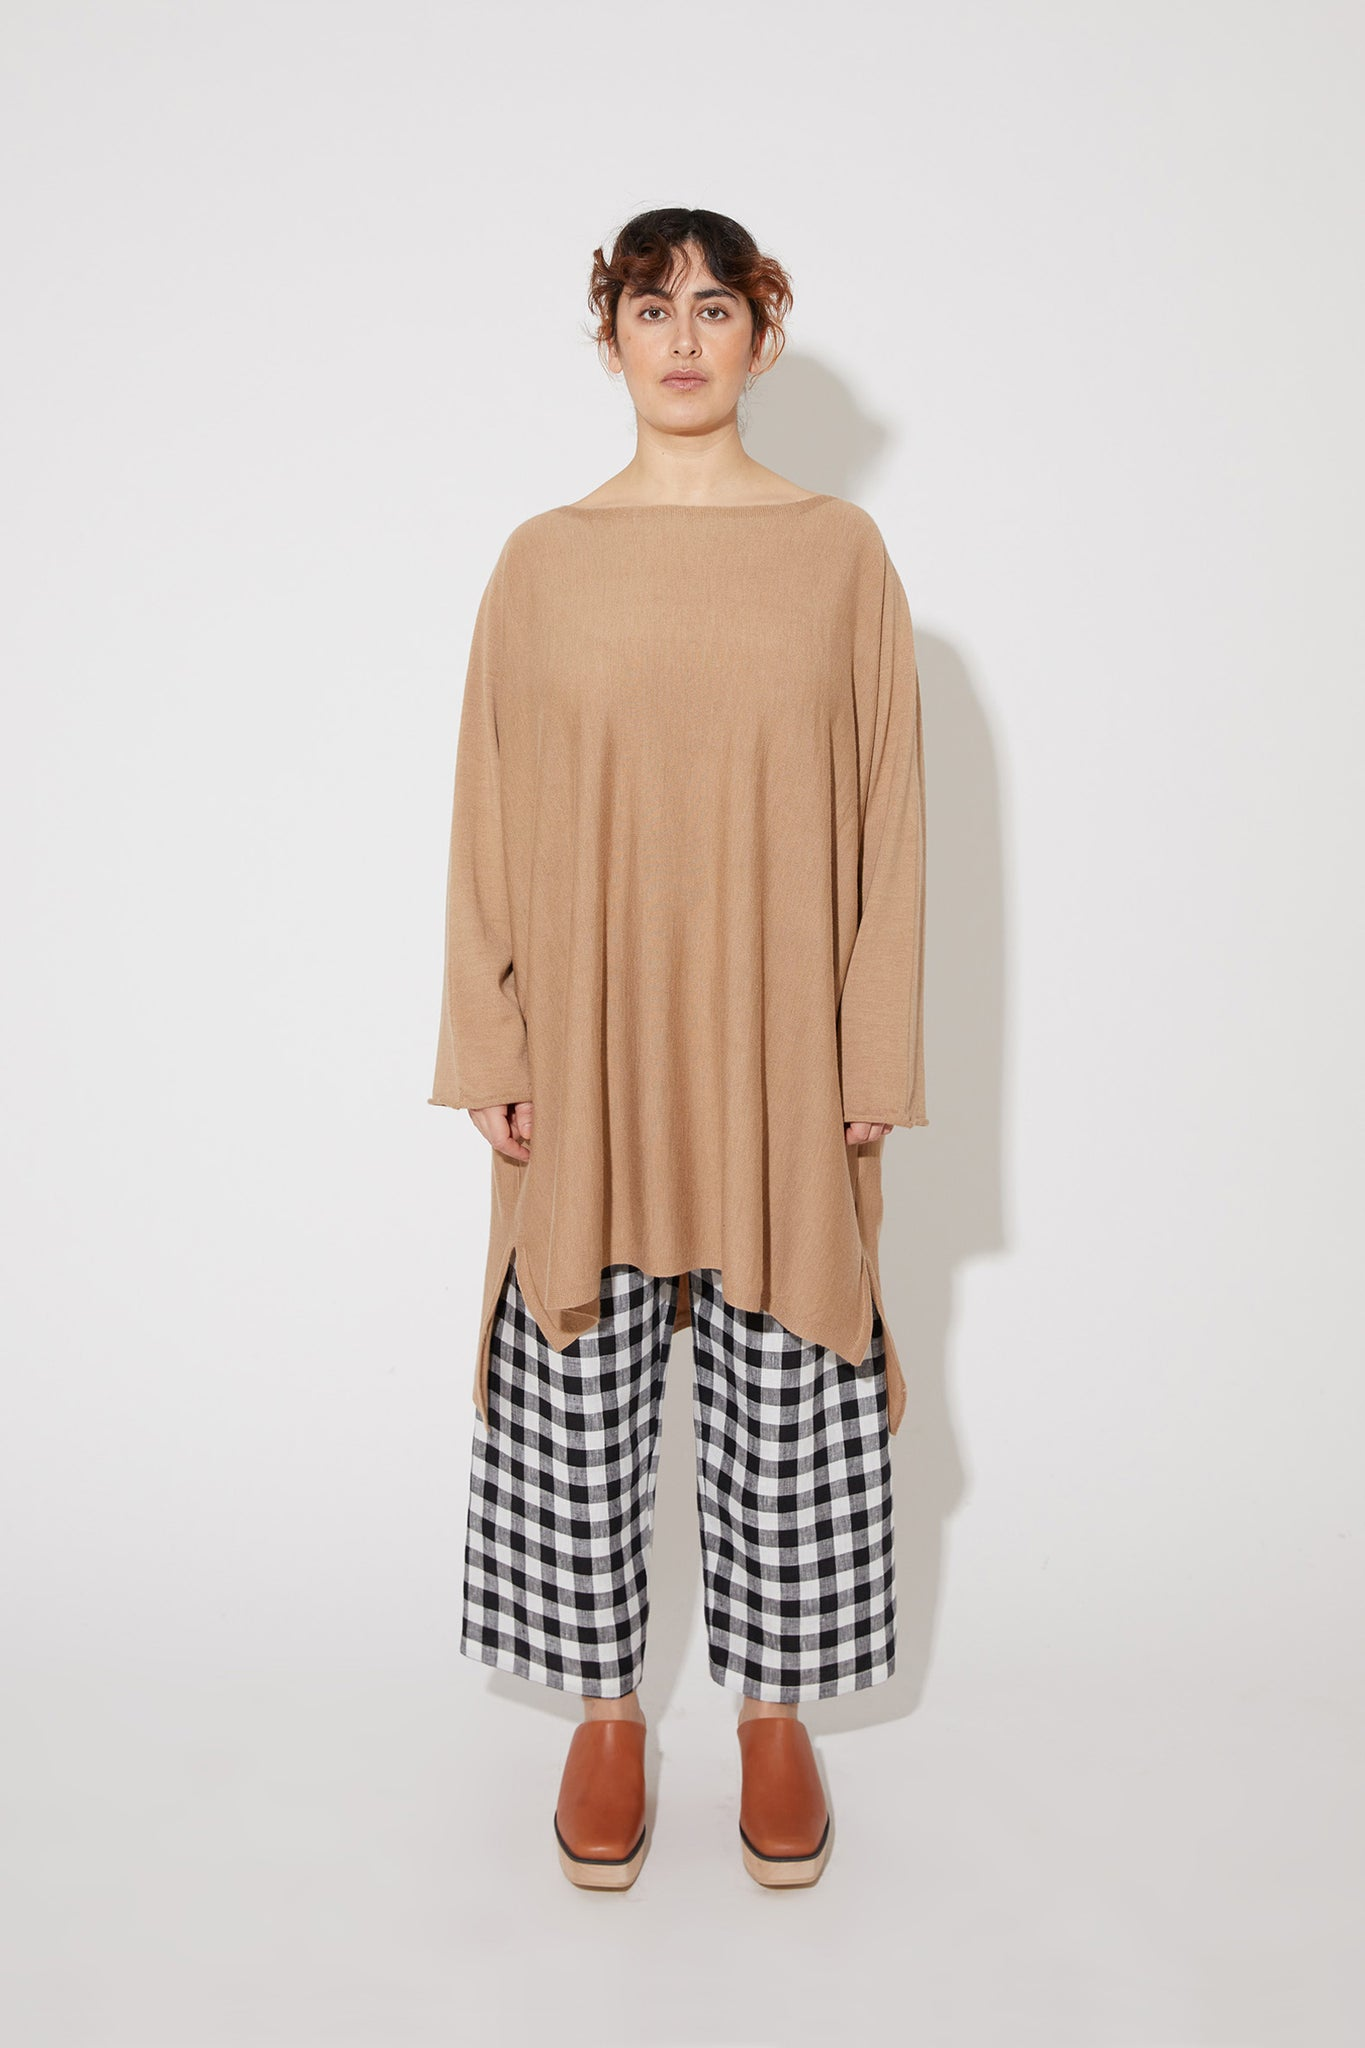 Eelia merino dress in beige